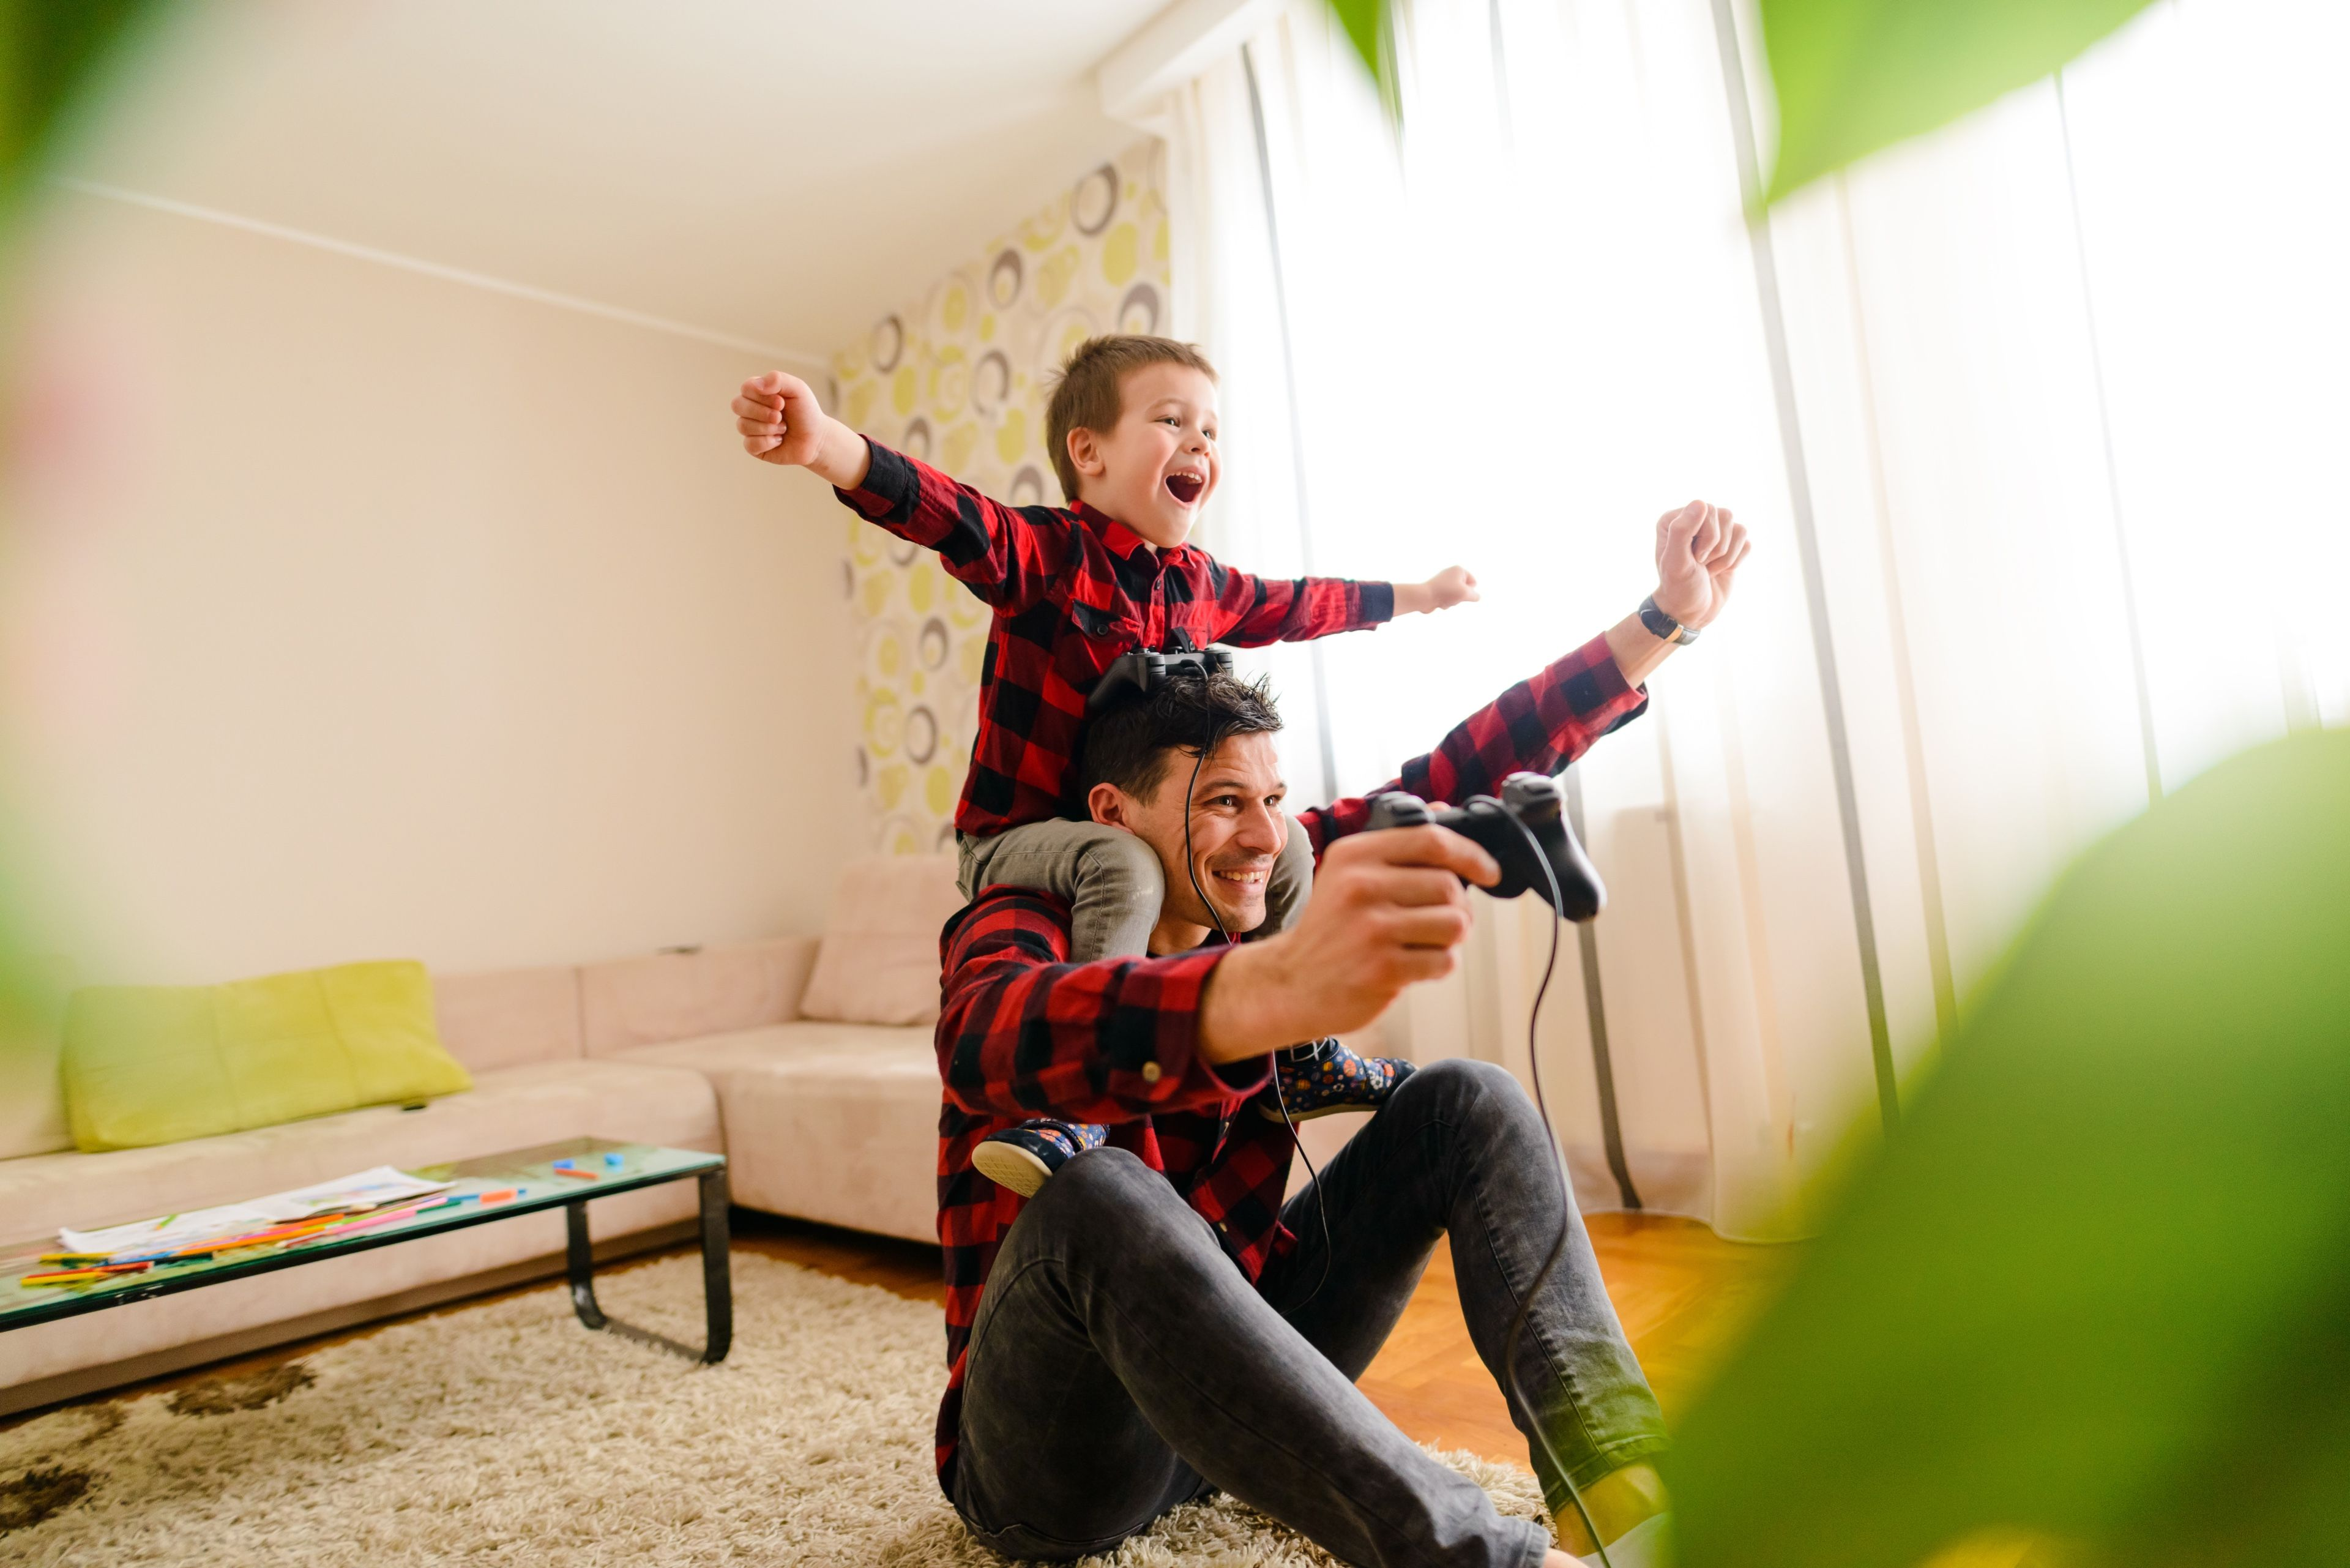 Dad playing games with son. How to Pick the Right Mortgage Lender for Your Refinance 5 Things Besides Interest Rate to Consider